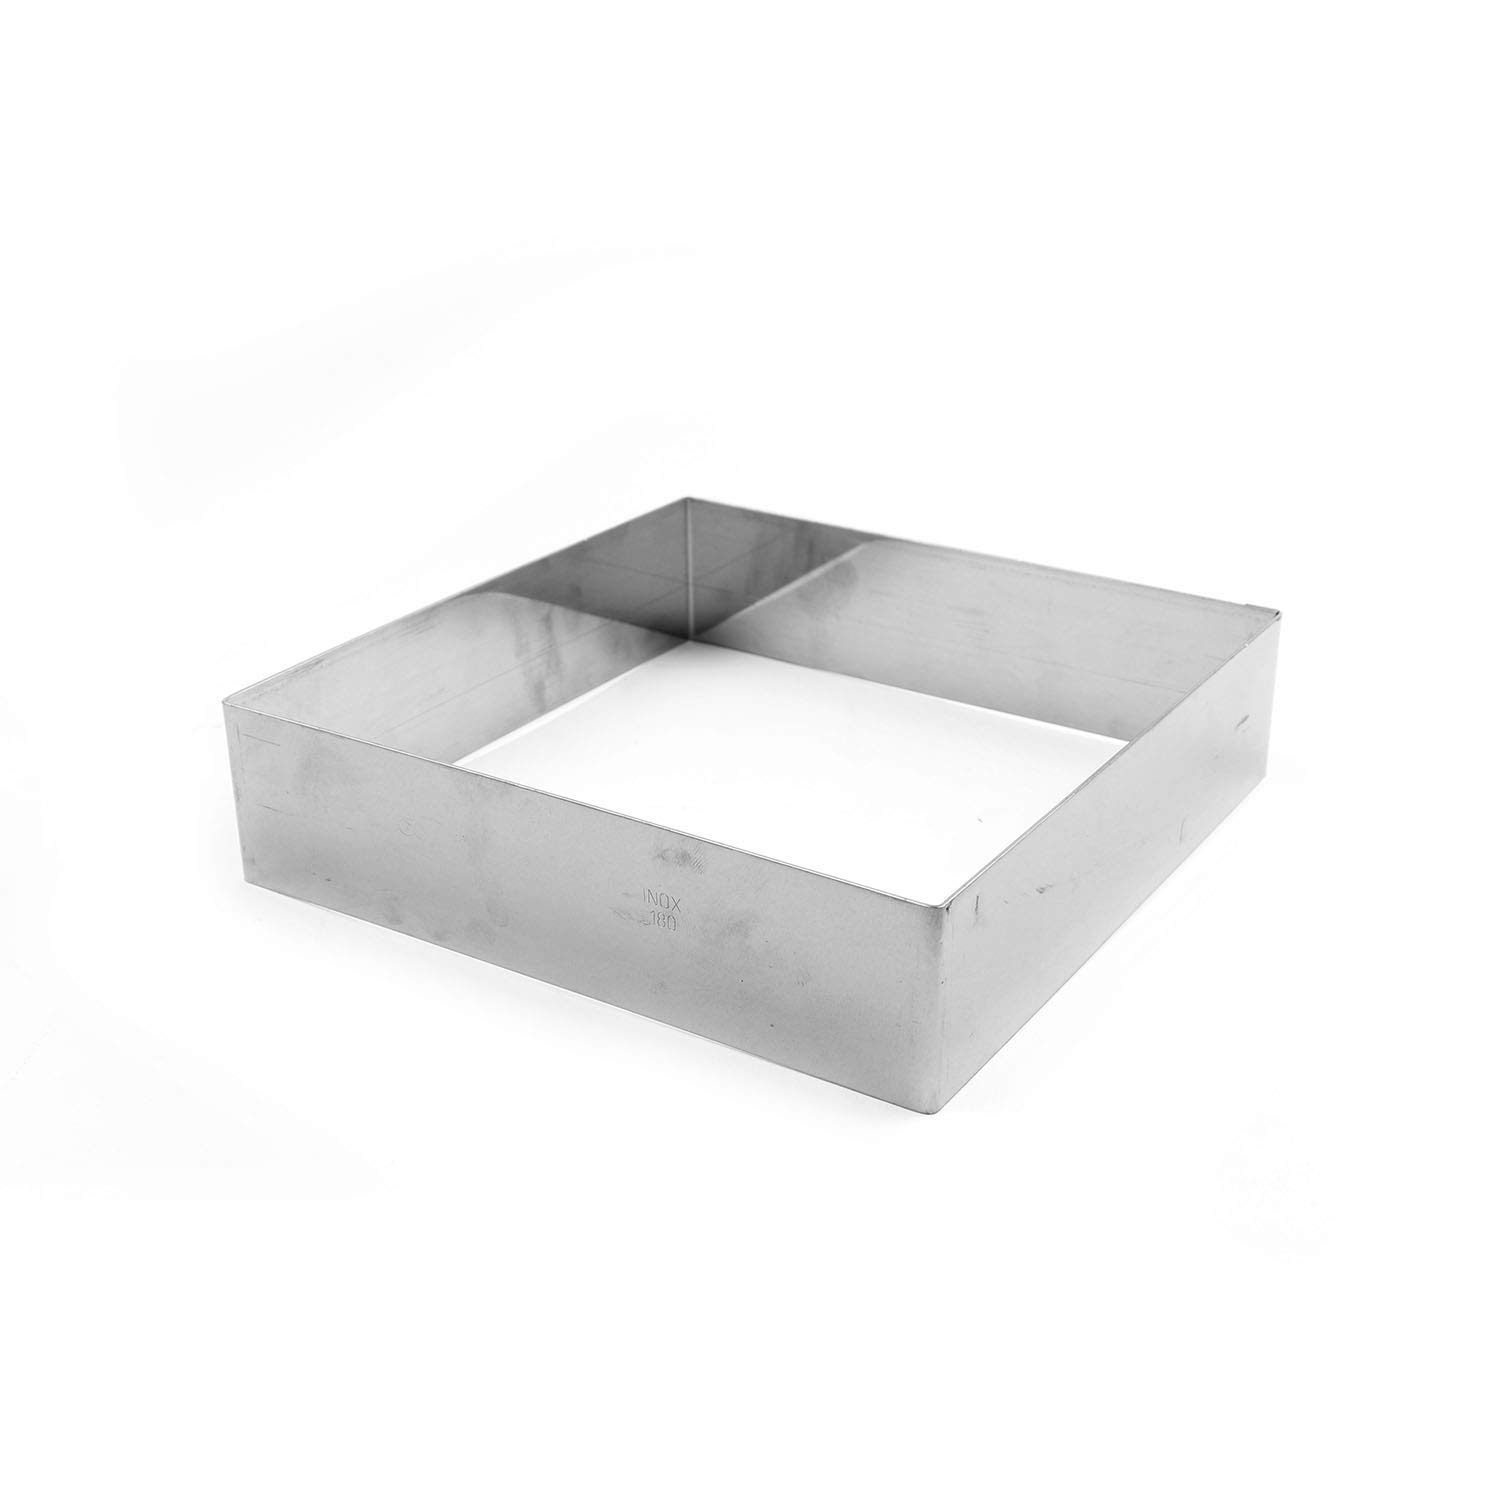 Gobel 863330 Stainless Steel Square Cake Ring 6-5/16 Inch x 6-5/16 Inch x 1-3/4 Inch High